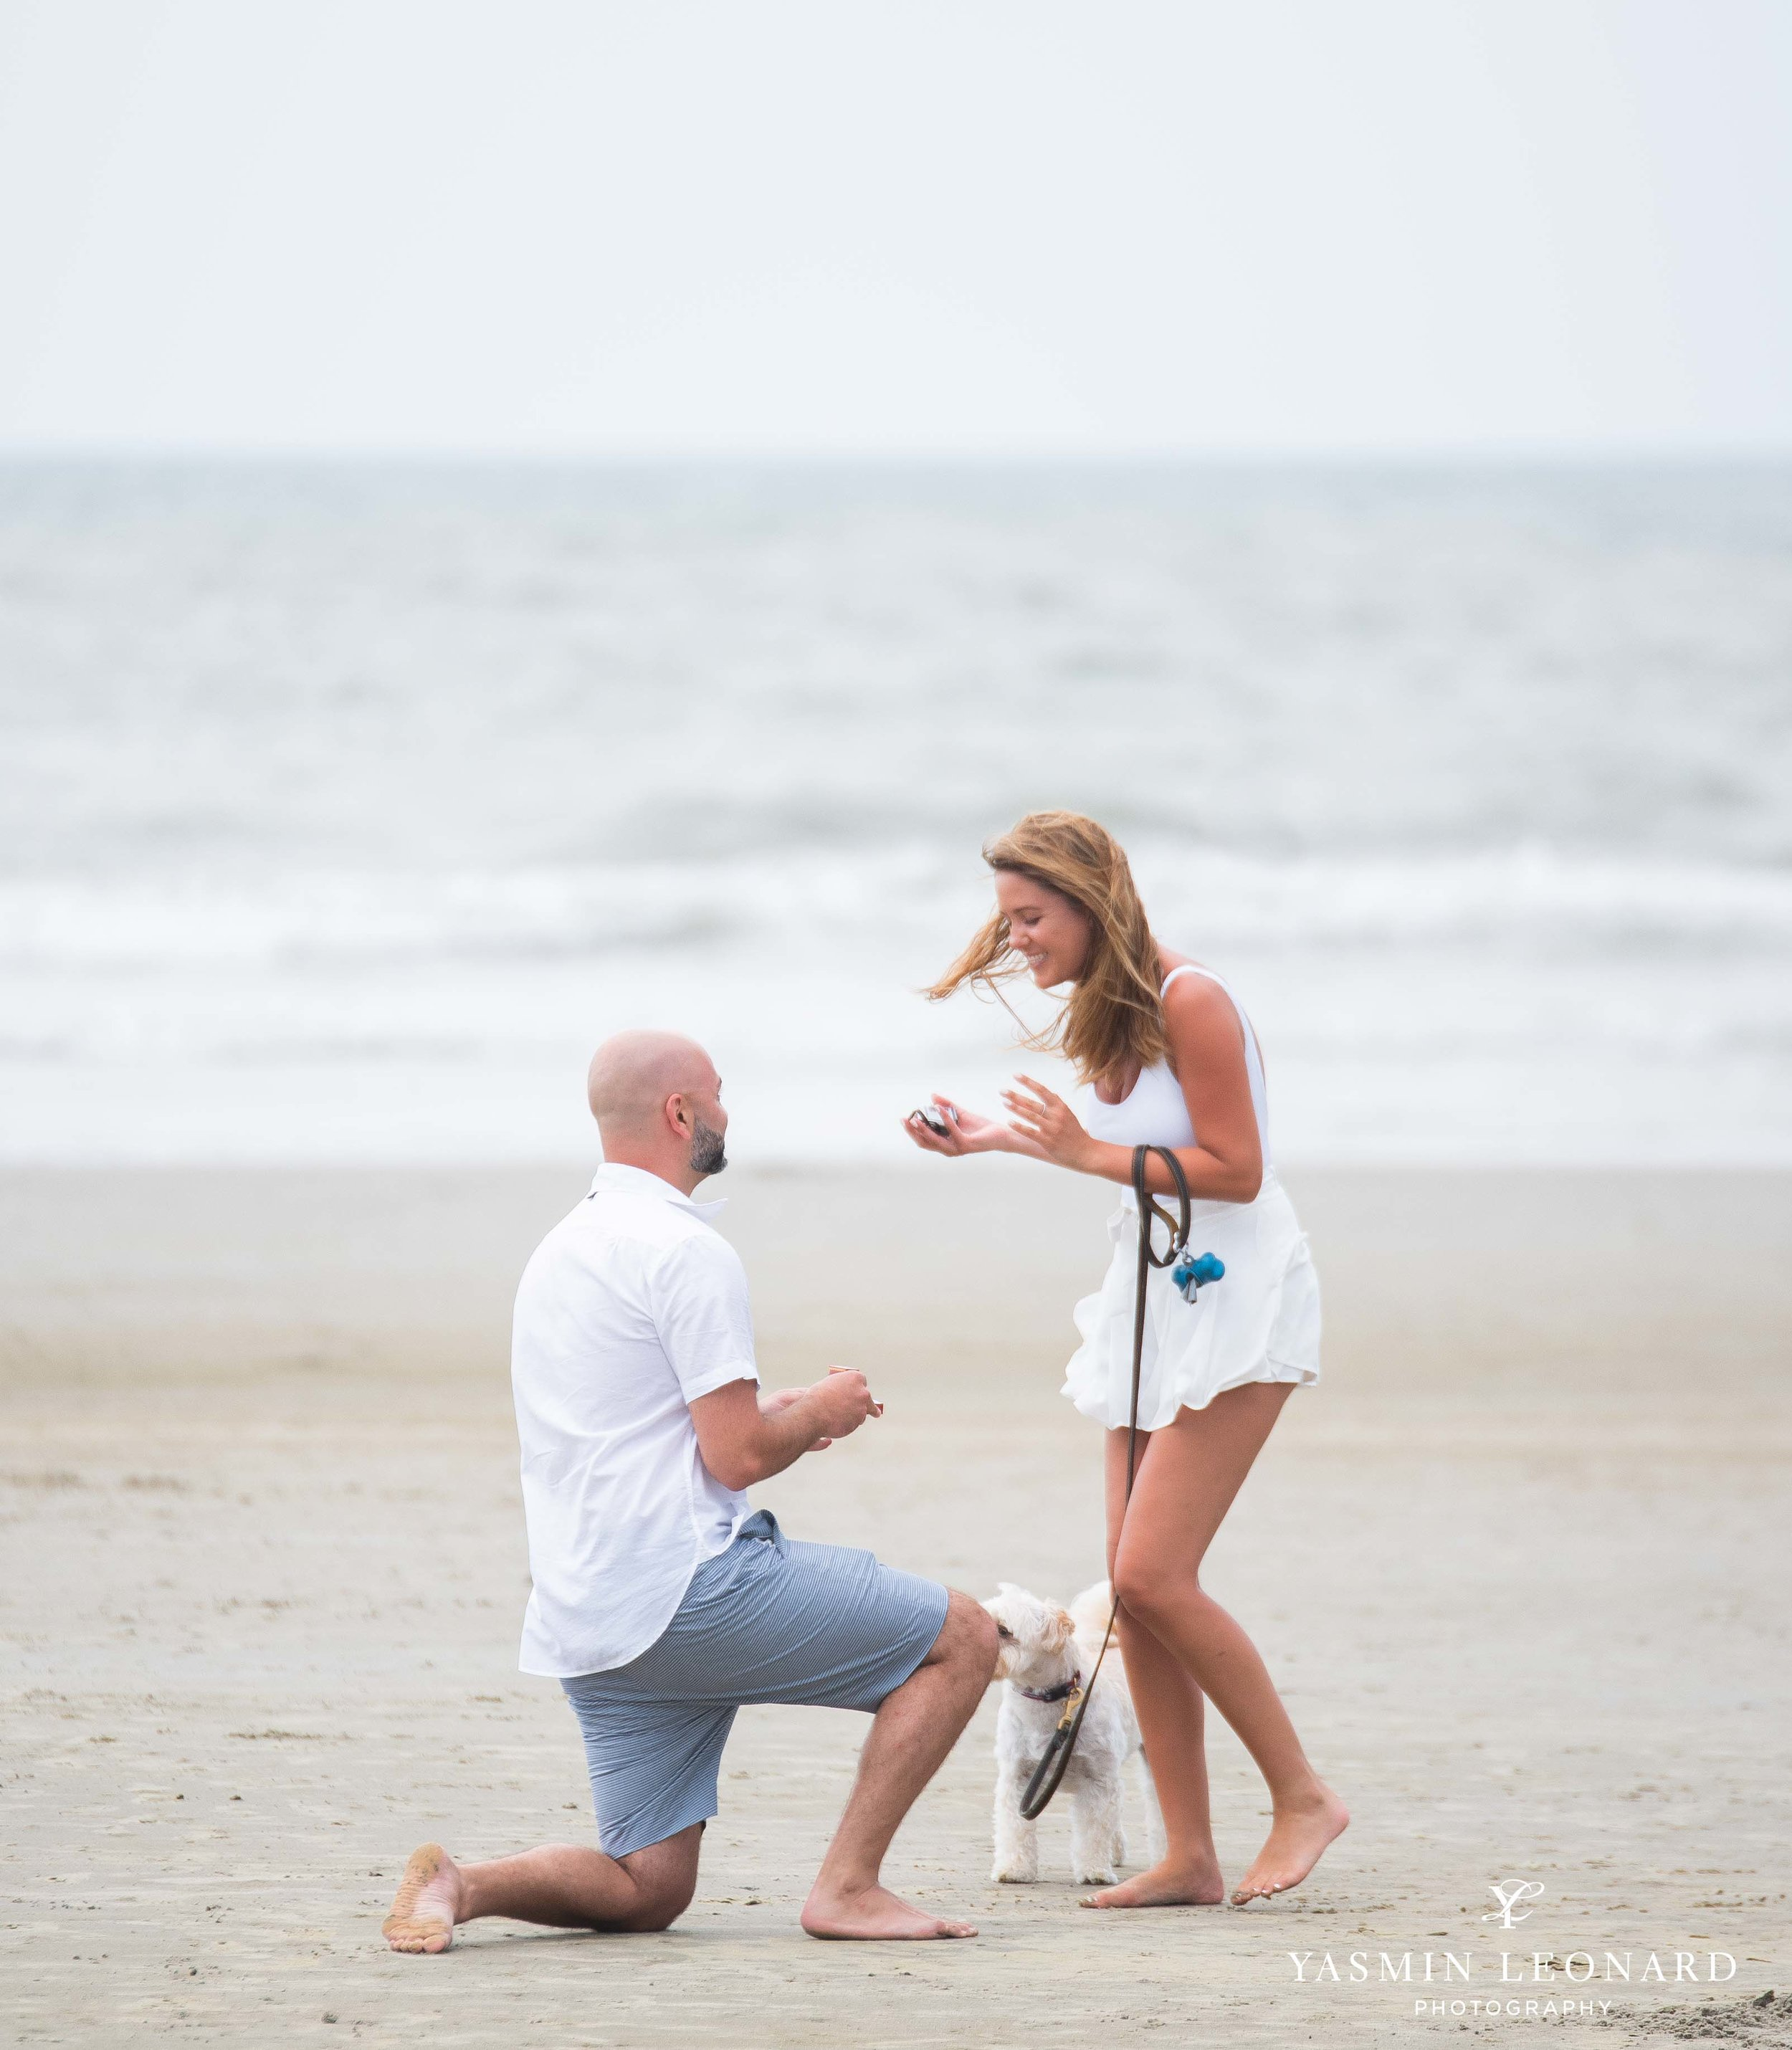 Wedding Proposal Ideas Beach: Yasmin Leonard Photography